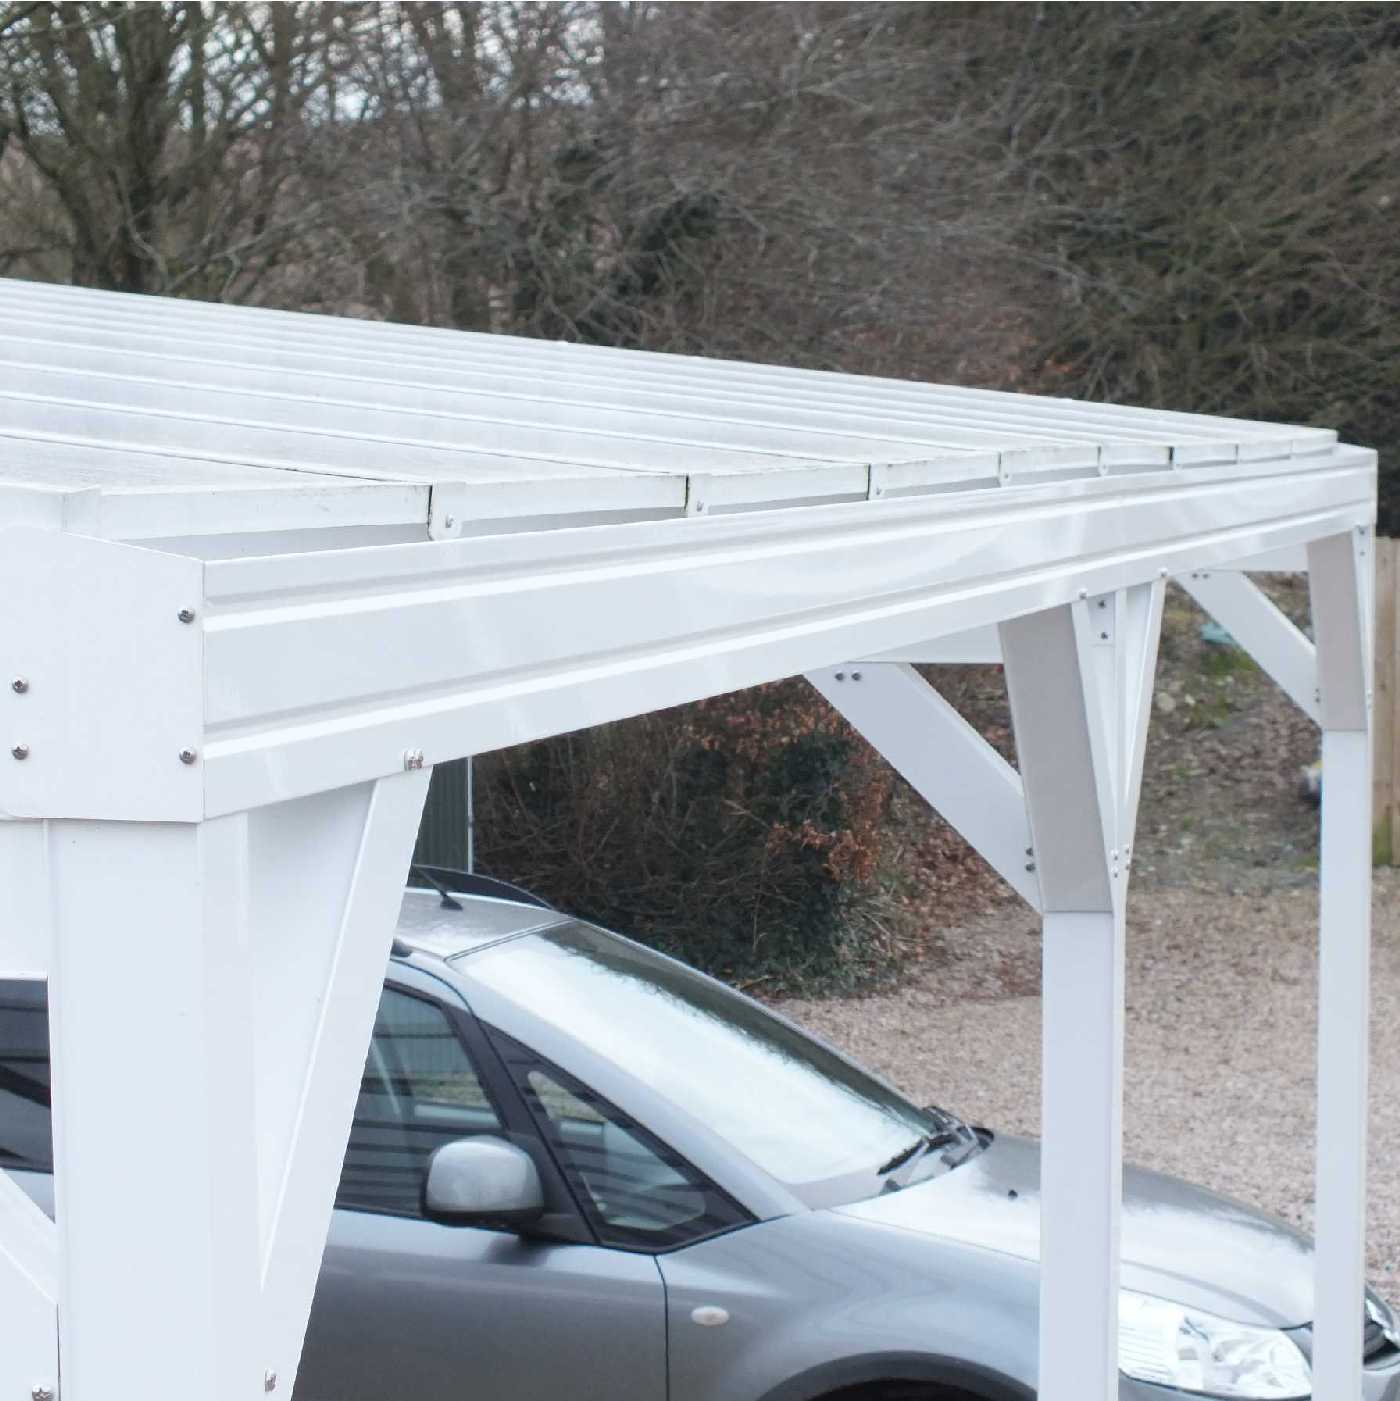 Omega Smart Free-Standing, MonoPitch Roof Canopy with 16mm Polycarbonate Glazing - 8.4m (W) x 3.5m (P), (8) Supporting Posts from Omega Build